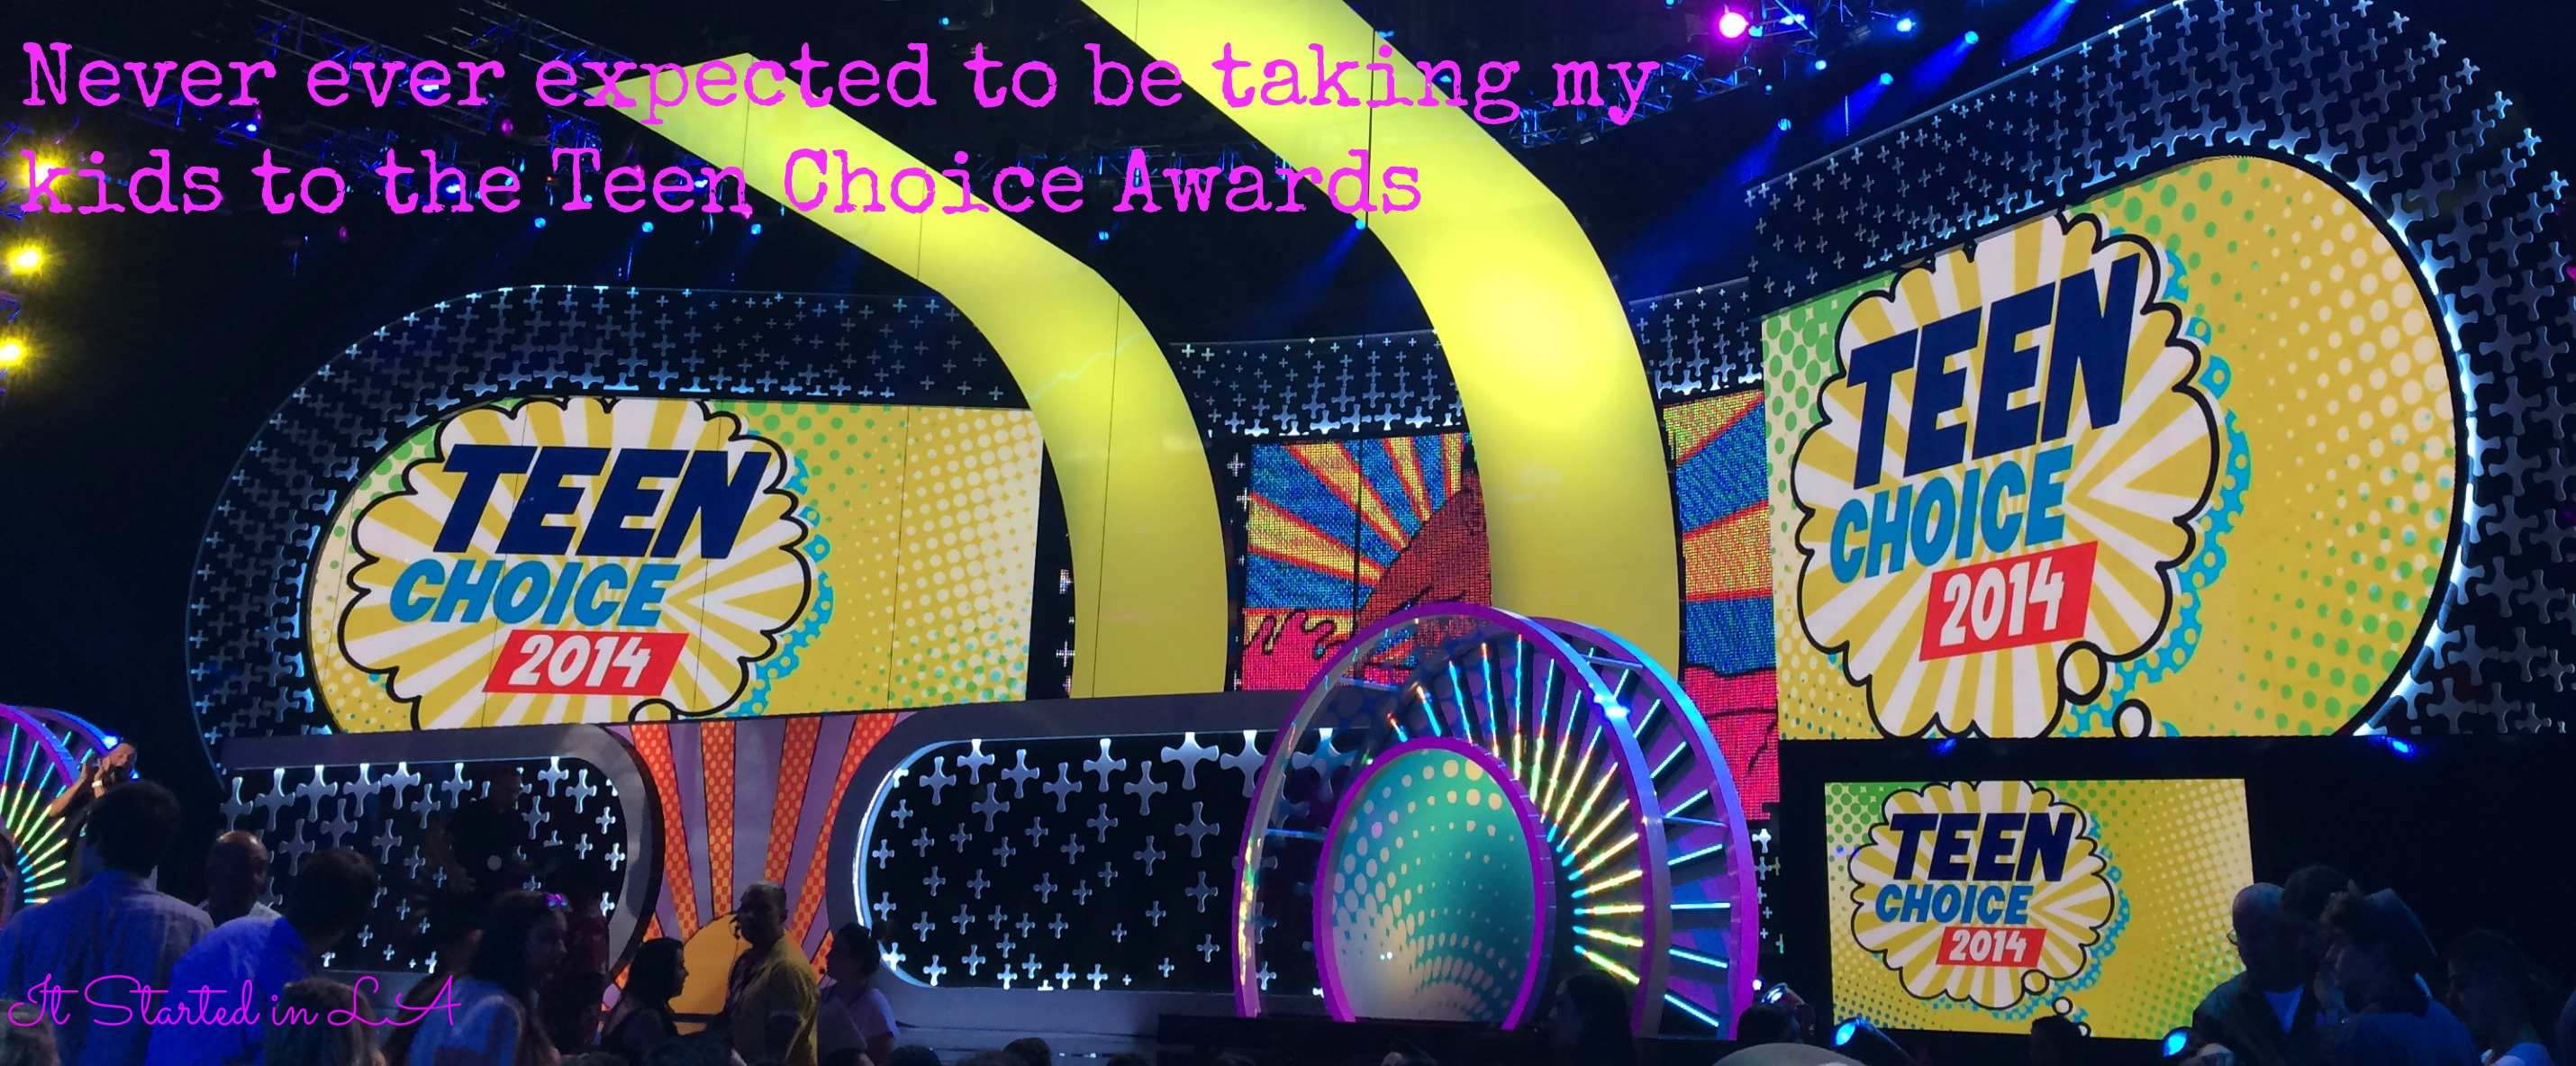 Teen Choice 2014